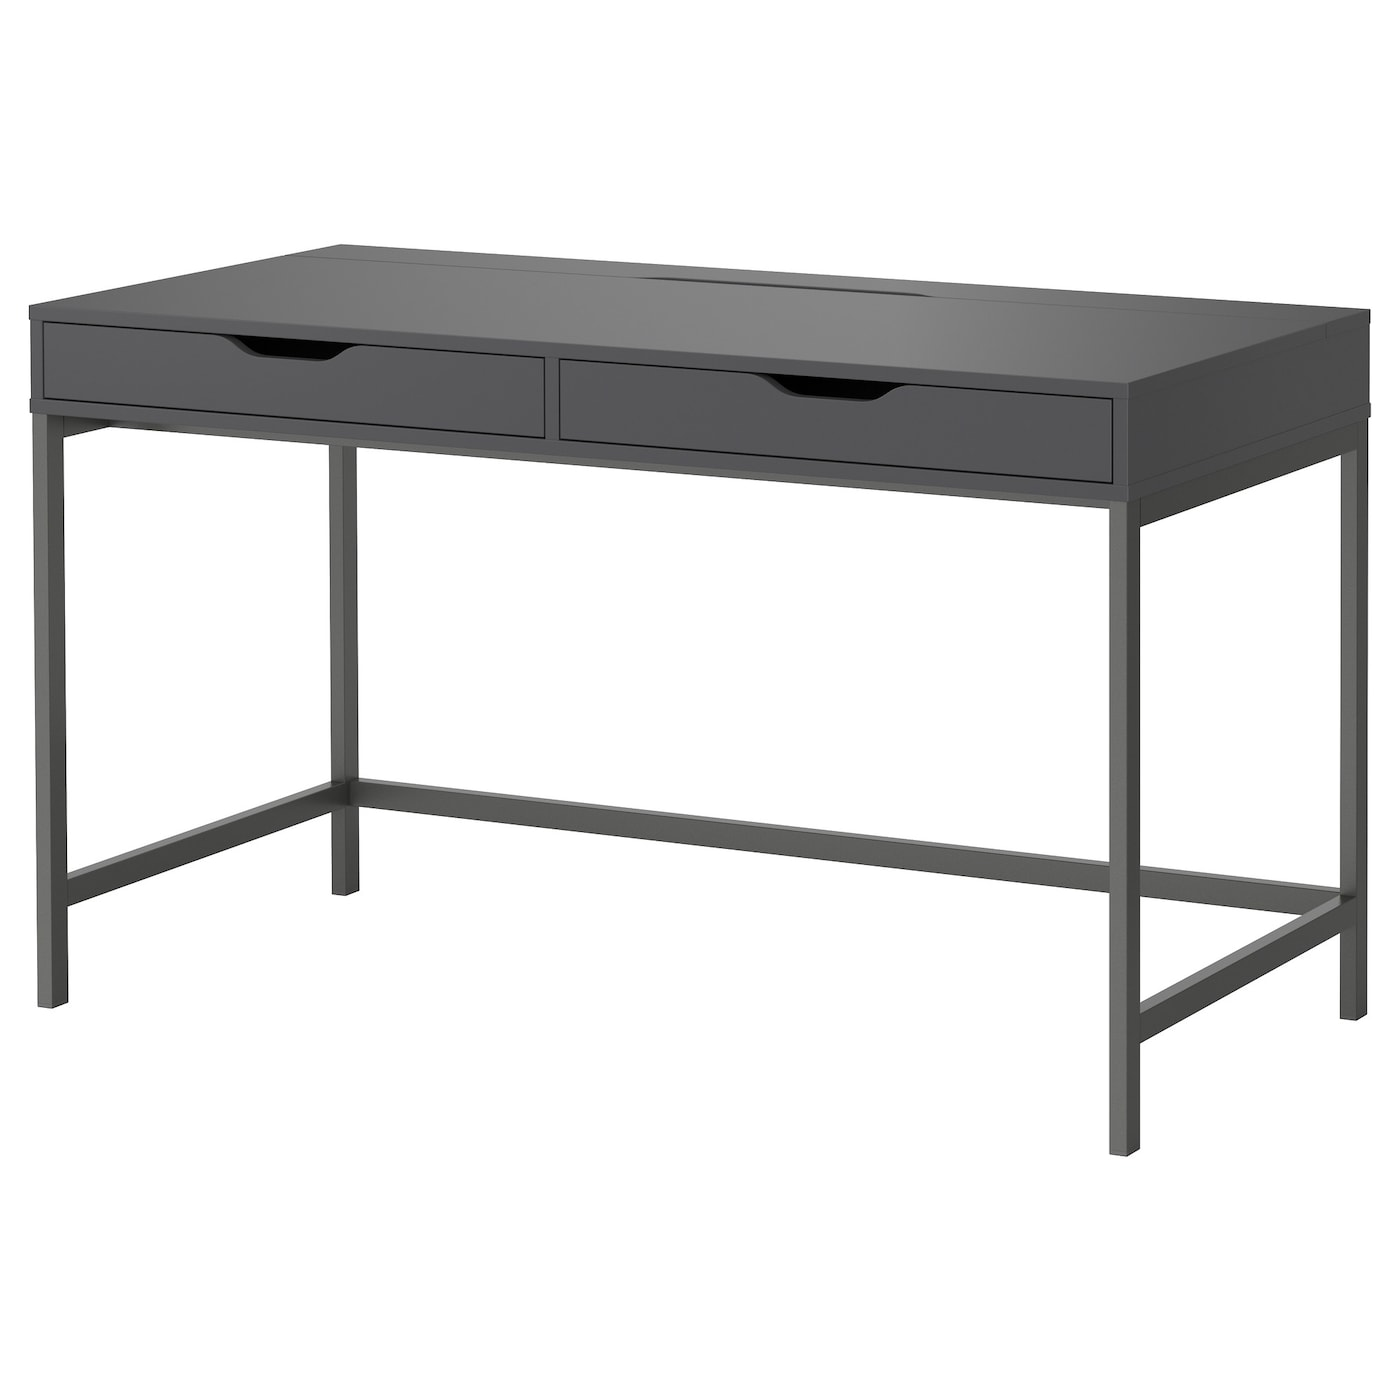 alex bureau gris 131 x 60 cm ikea. Black Bedroom Furniture Sets. Home Design Ideas